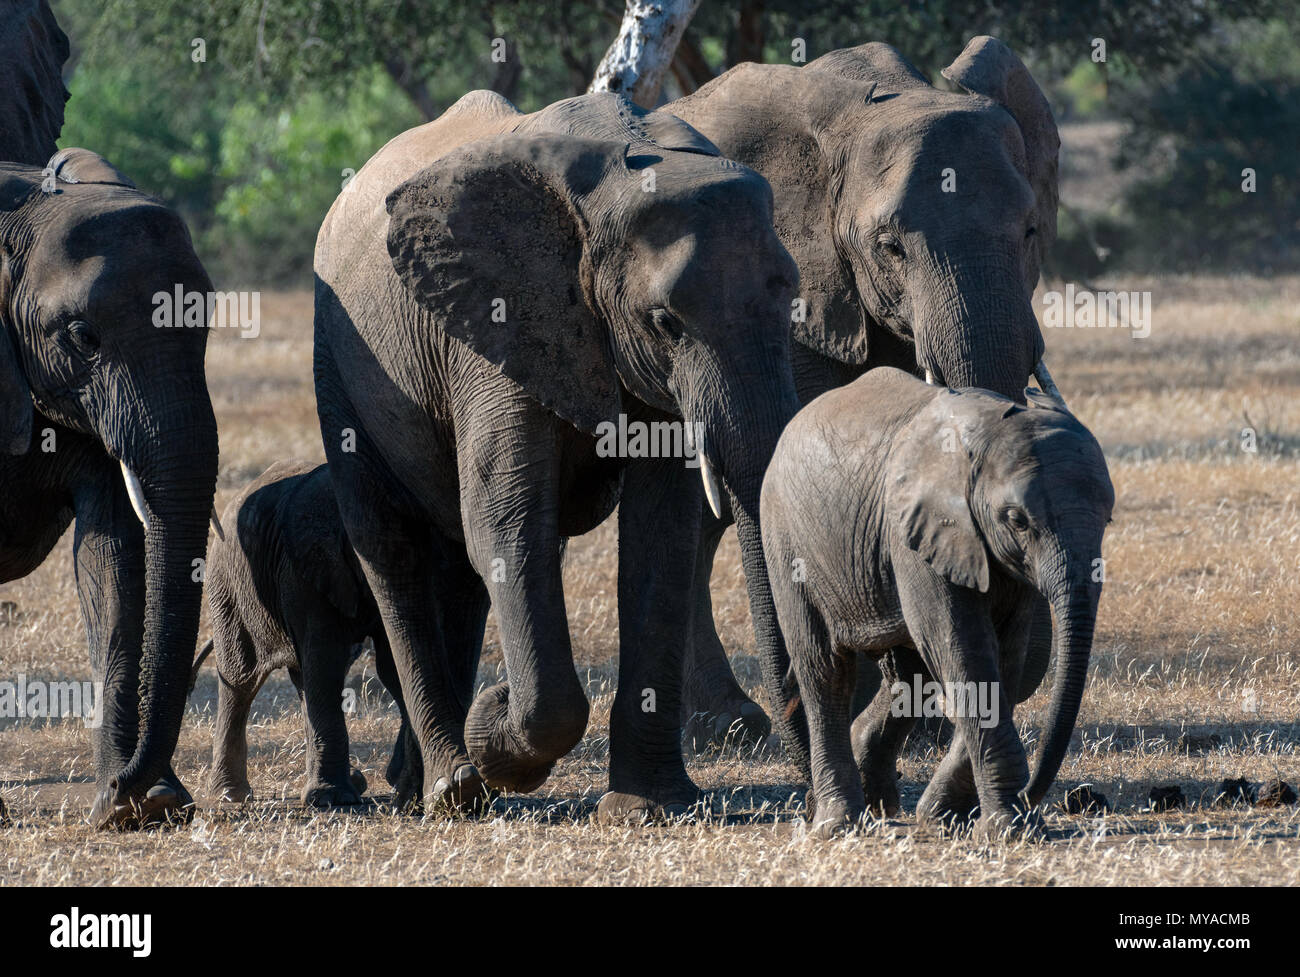 Elephant herd on the move in the Mashatu Private Game Reserve in Botswana - Stock Image